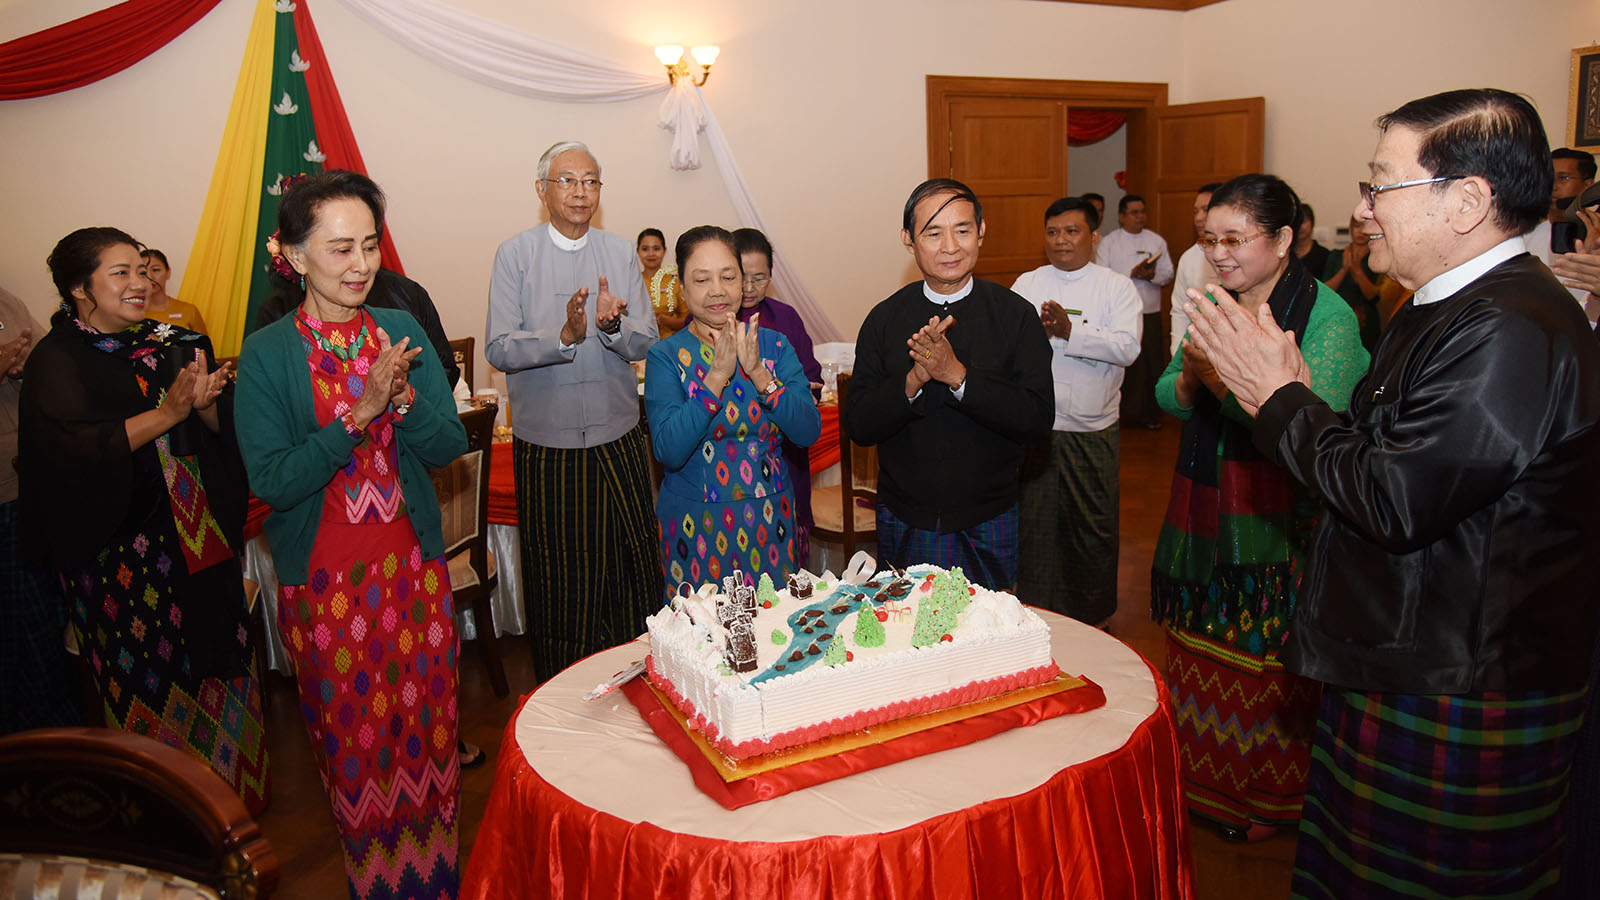 President U Win Myint, First Lady Daw Cho Cho, State Counsellor Daw Aung San Suu Kyi, Pyithu Hluttaw Speaker U T Khun Myat and wife Daw Yin May and family members pose for a group photo at the Christmas, New Year Eve luncheon at the residence of Pyithu Hluttaw Speaker U T Khun Myat in Nay Pyi Taw yesterday. Photo: MNA